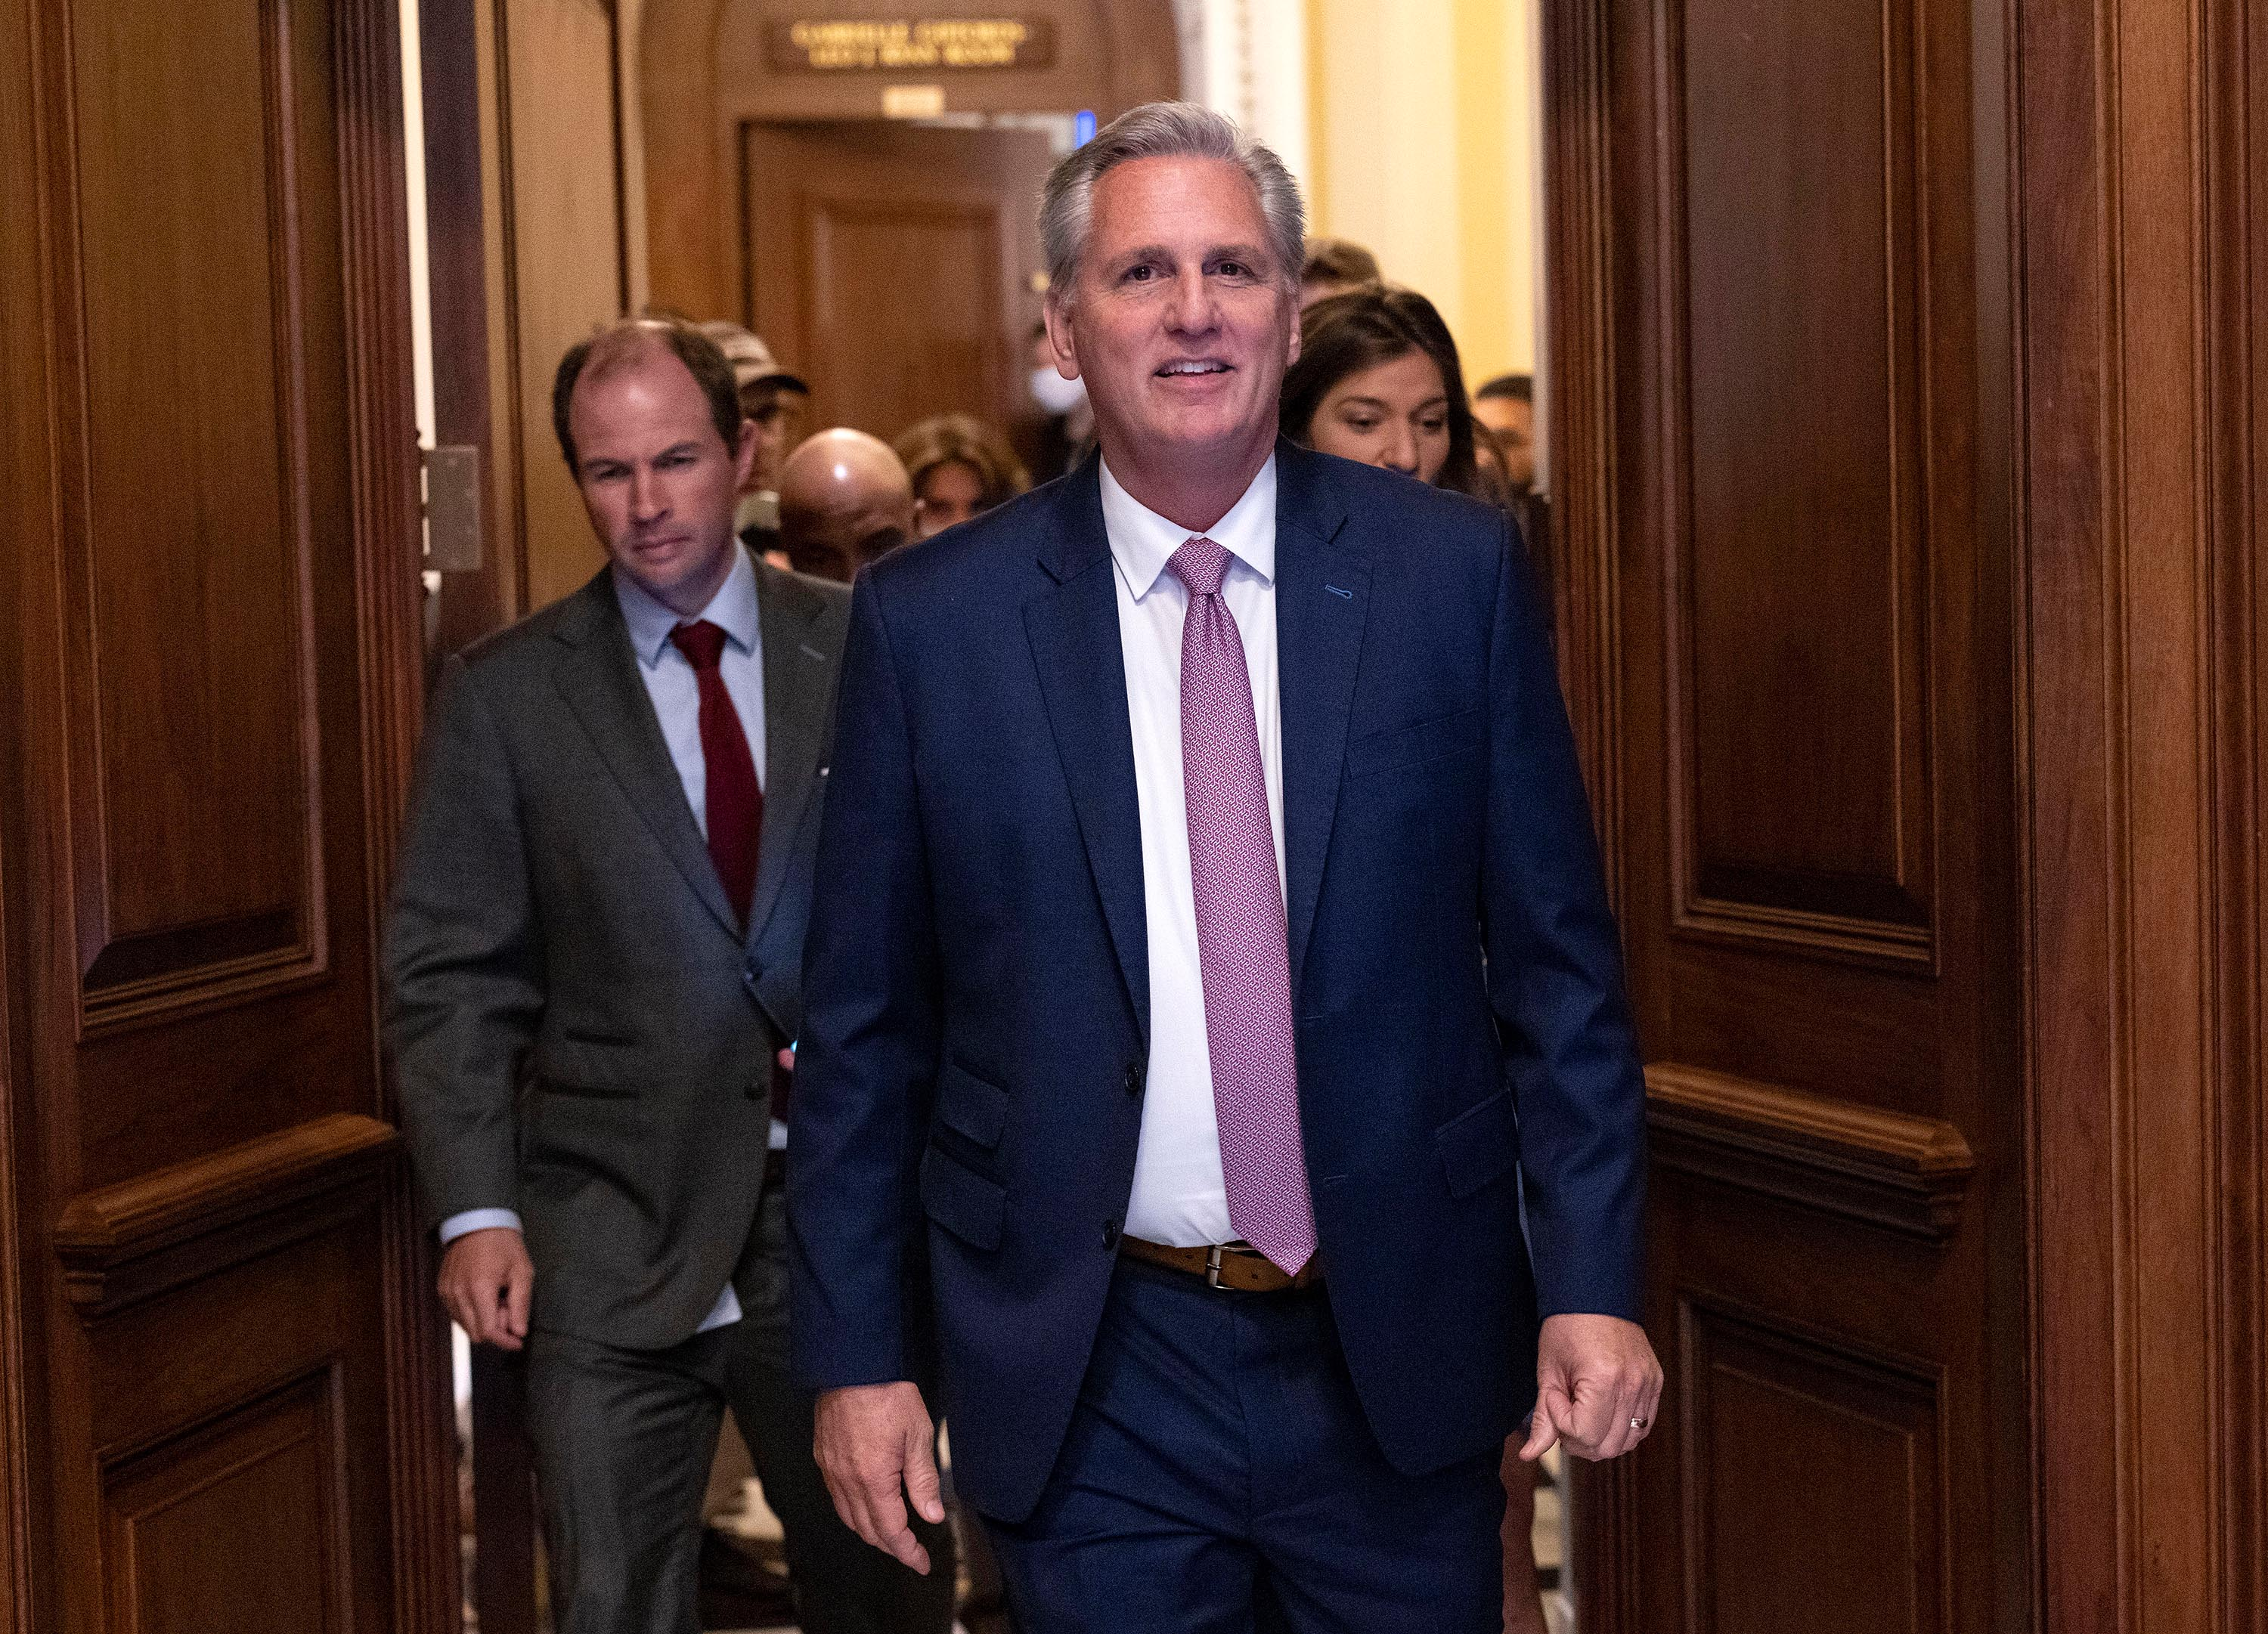 House Minority LeaderKevin McCarthy leaves the House Chambers after a vote on creating a January 6th Committee at the U.S. Capitol on June 30.